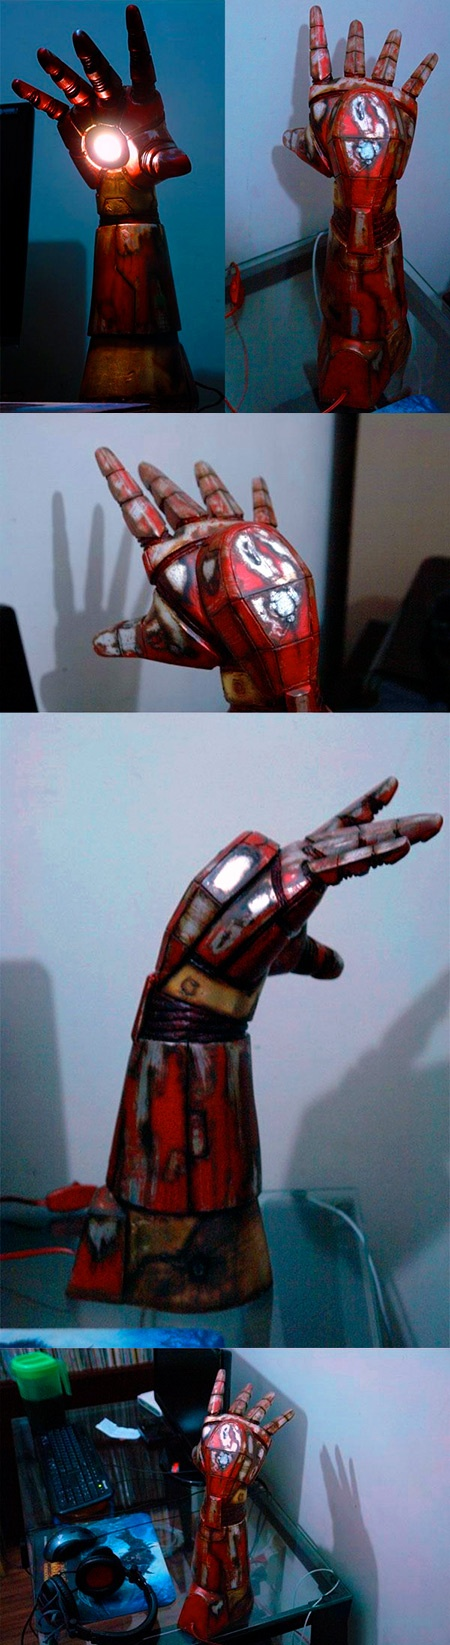 Now THIS is one cool desktop lamp! It is an Iron Man hand/gauntlet/arm that has been made to shed light on your desk via the repulsor weapon.